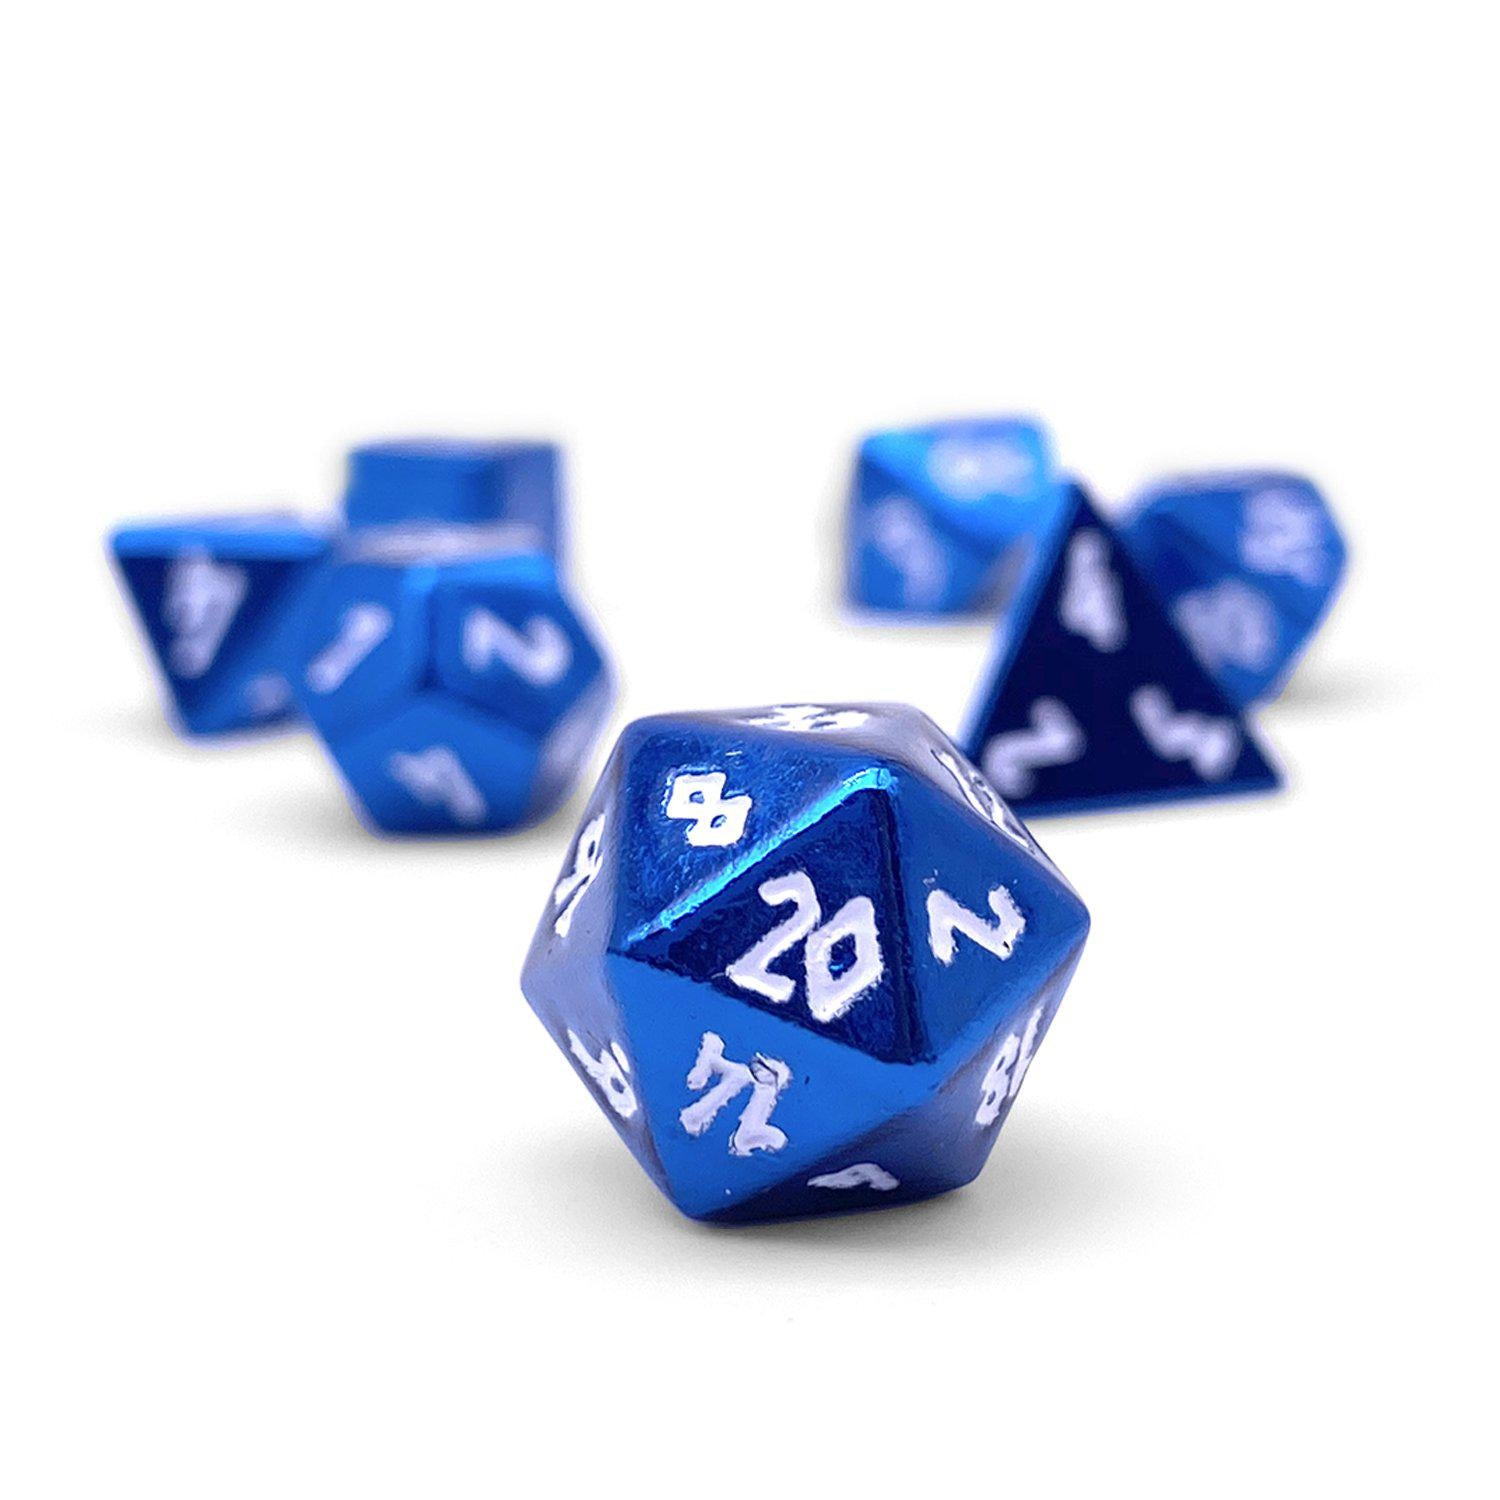 Celestial Blue Pebble ™ Dice - 10mm Alloy Mini Polyhedral Dice Set